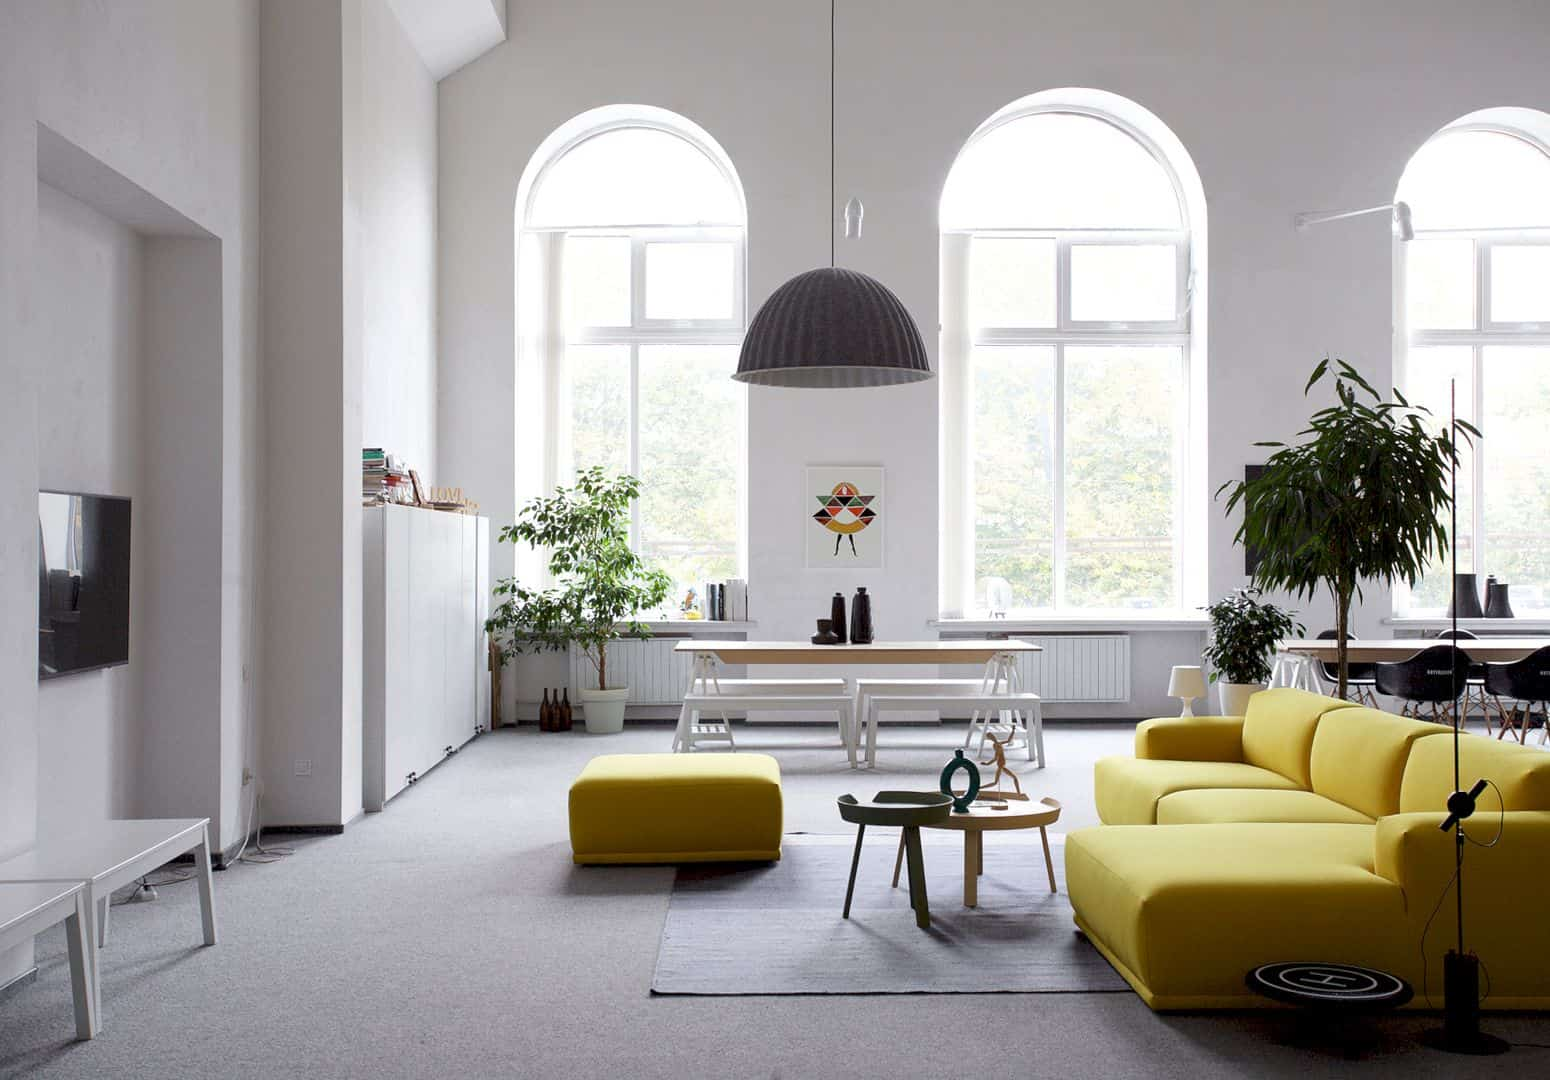 Nott Design Office: An Architectural Studio Office with Modern